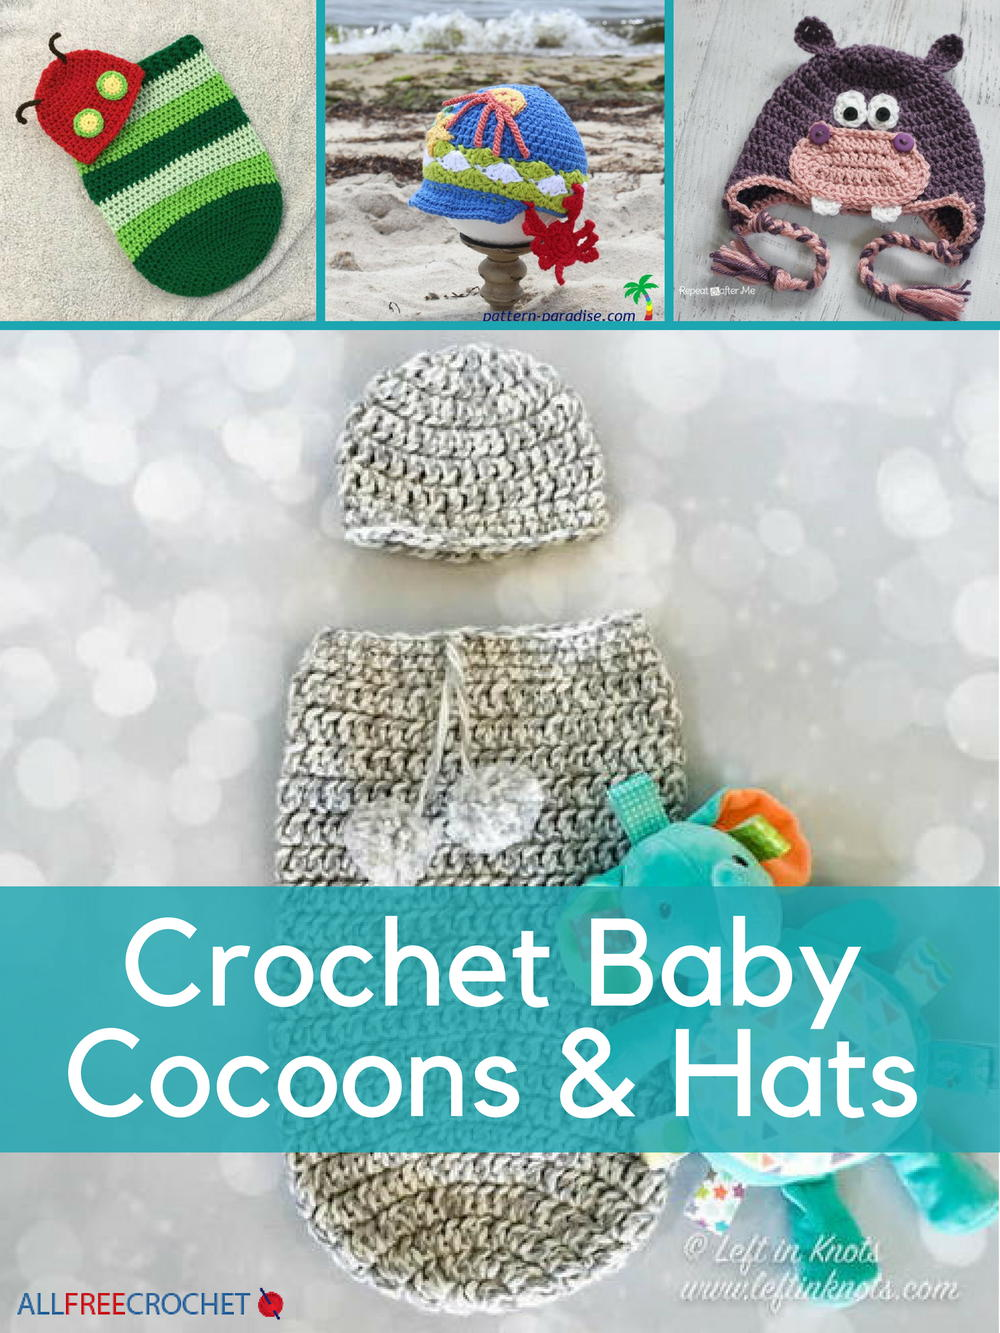 34 Crochet Baby Patterns: Crochet Baby Cocoons and Hats ...